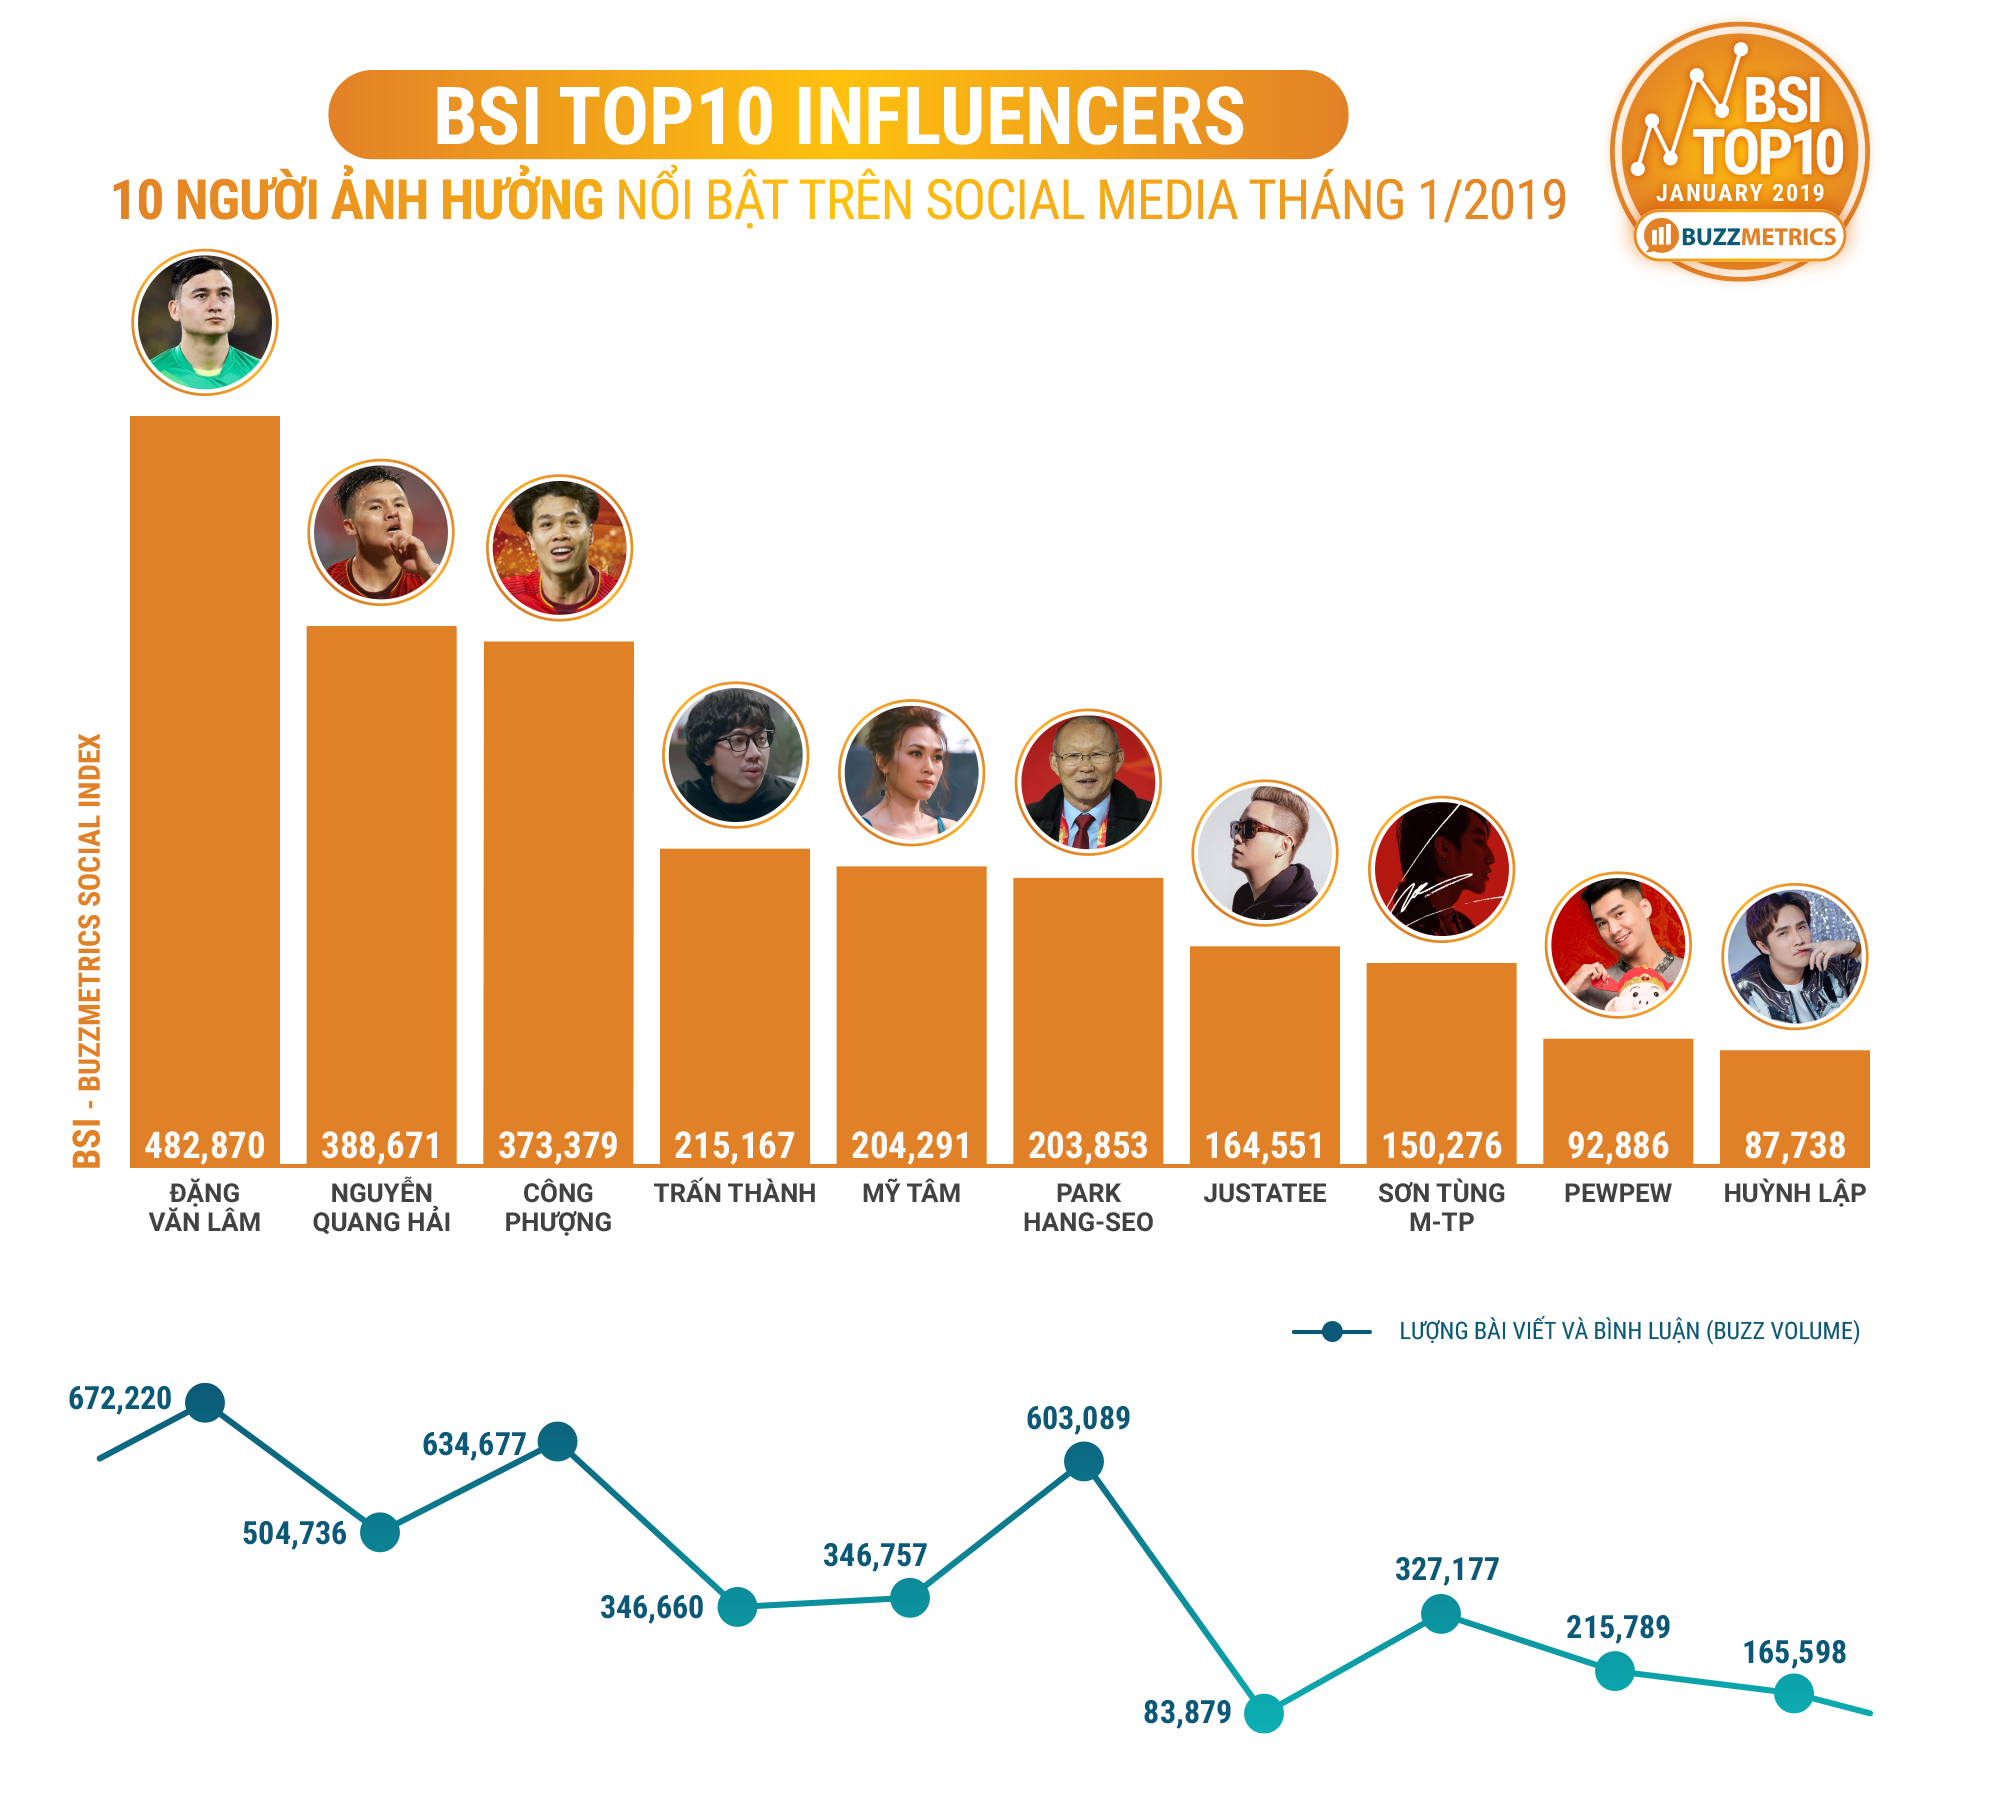 BSI Top10 INFLUENCERS 01/2019